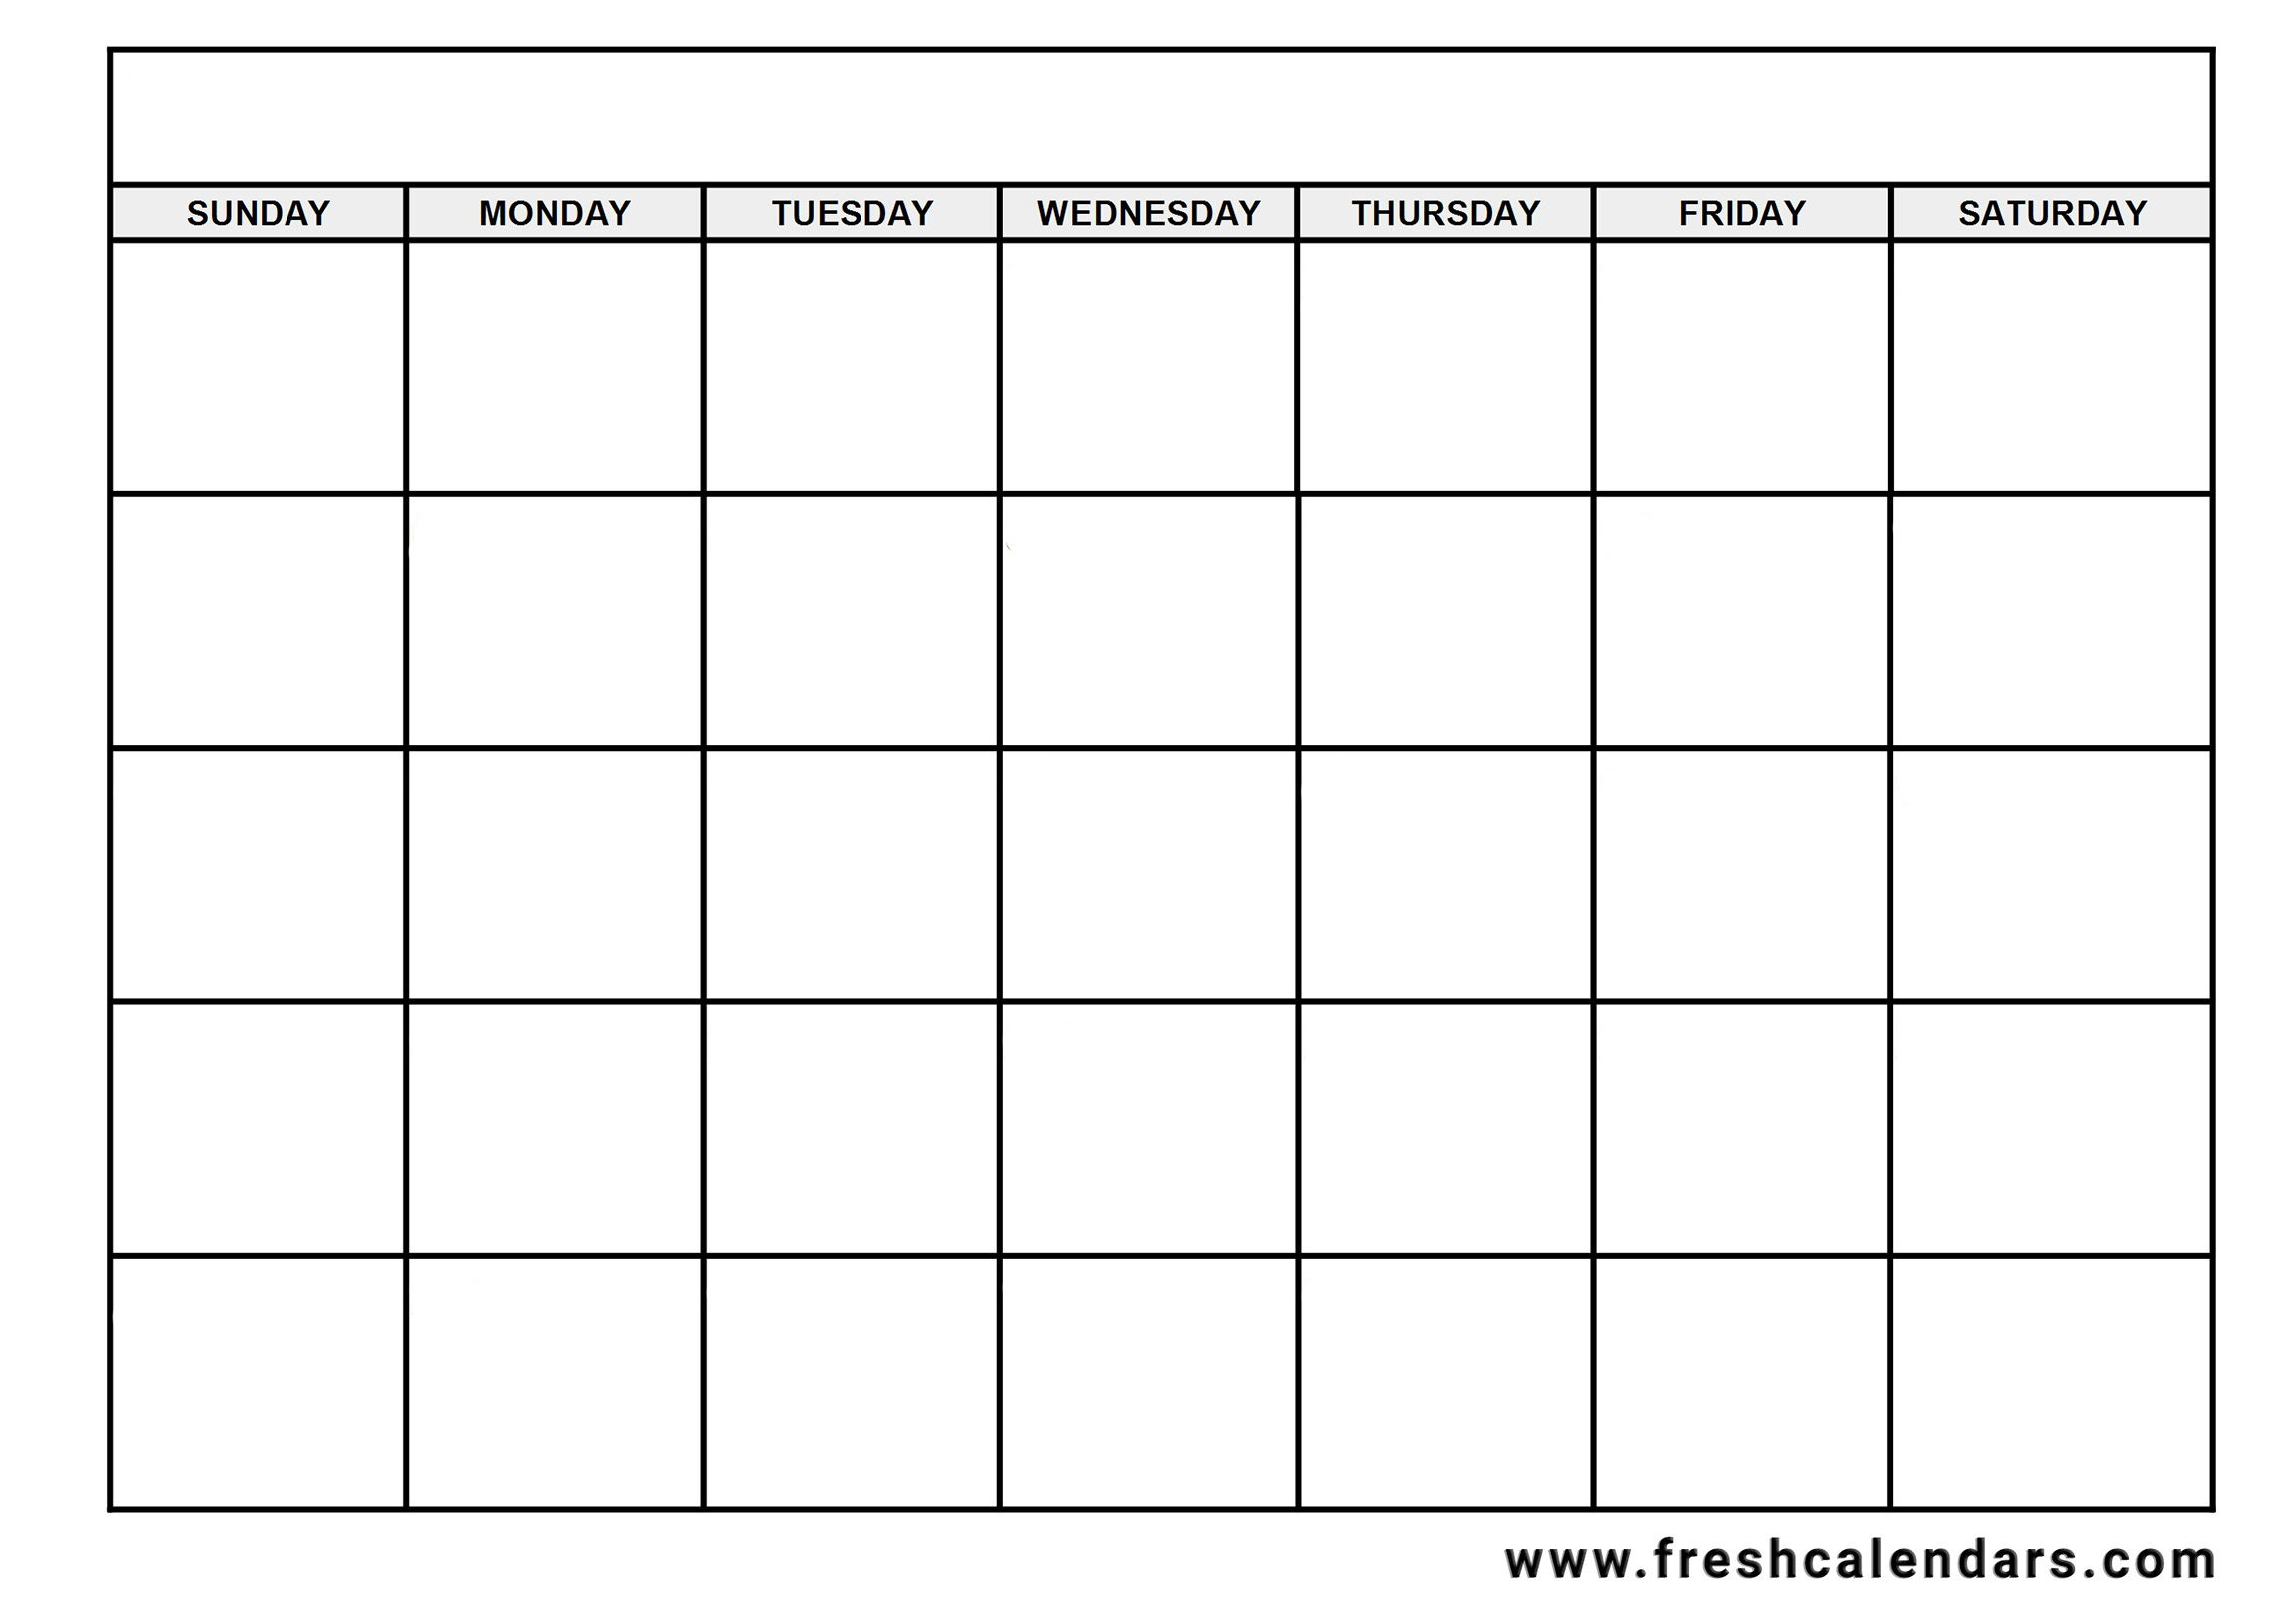 Calendar Blank 2020 Free Word With Week Name